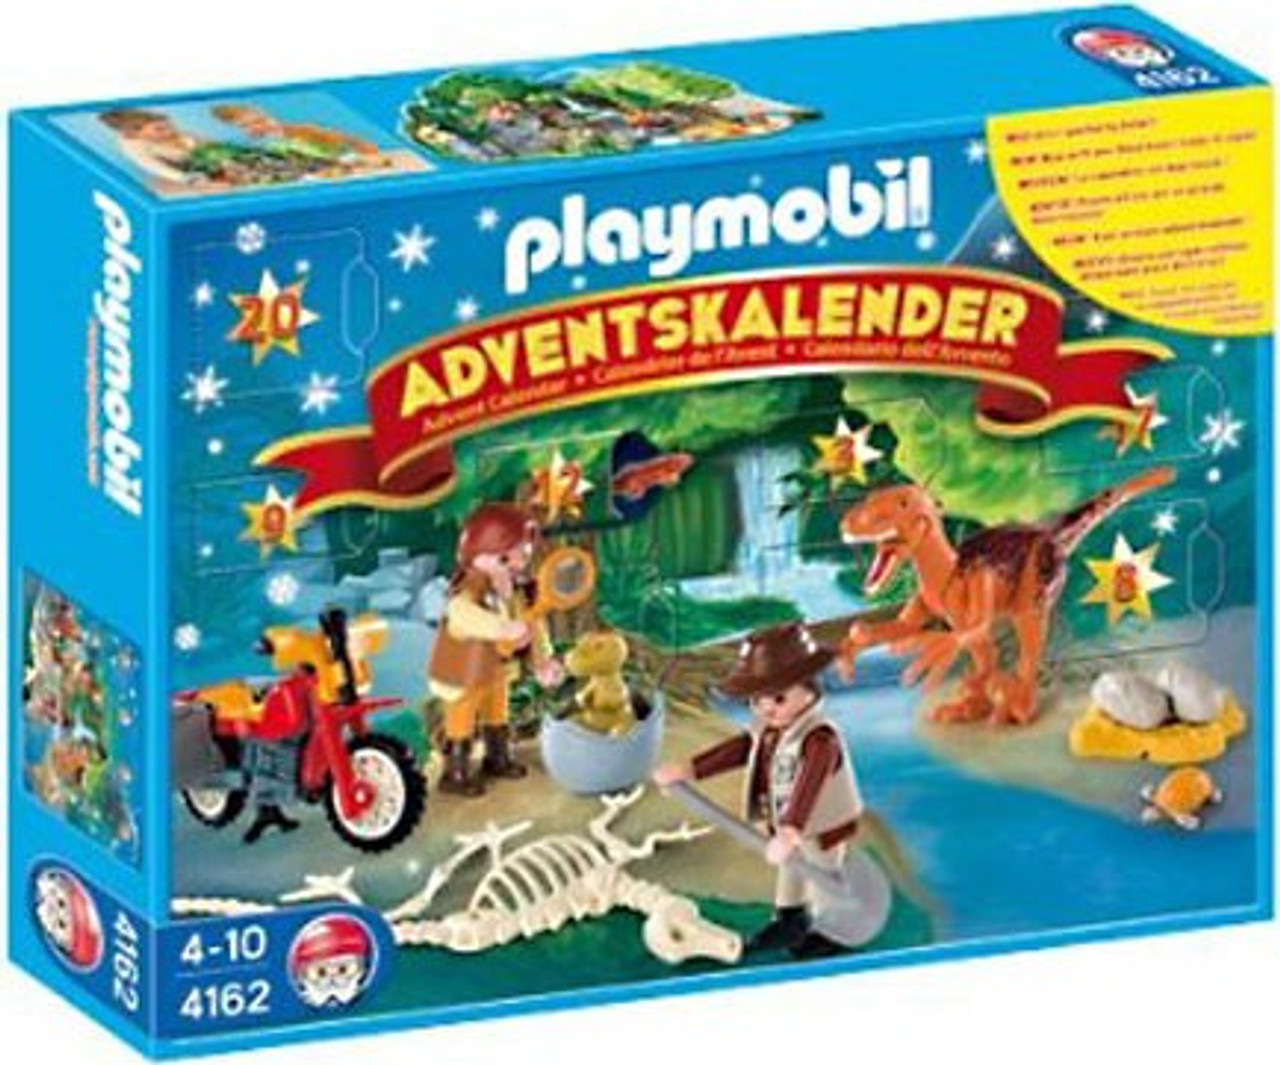 Playmobil Dinosaur Expedition Set #4162